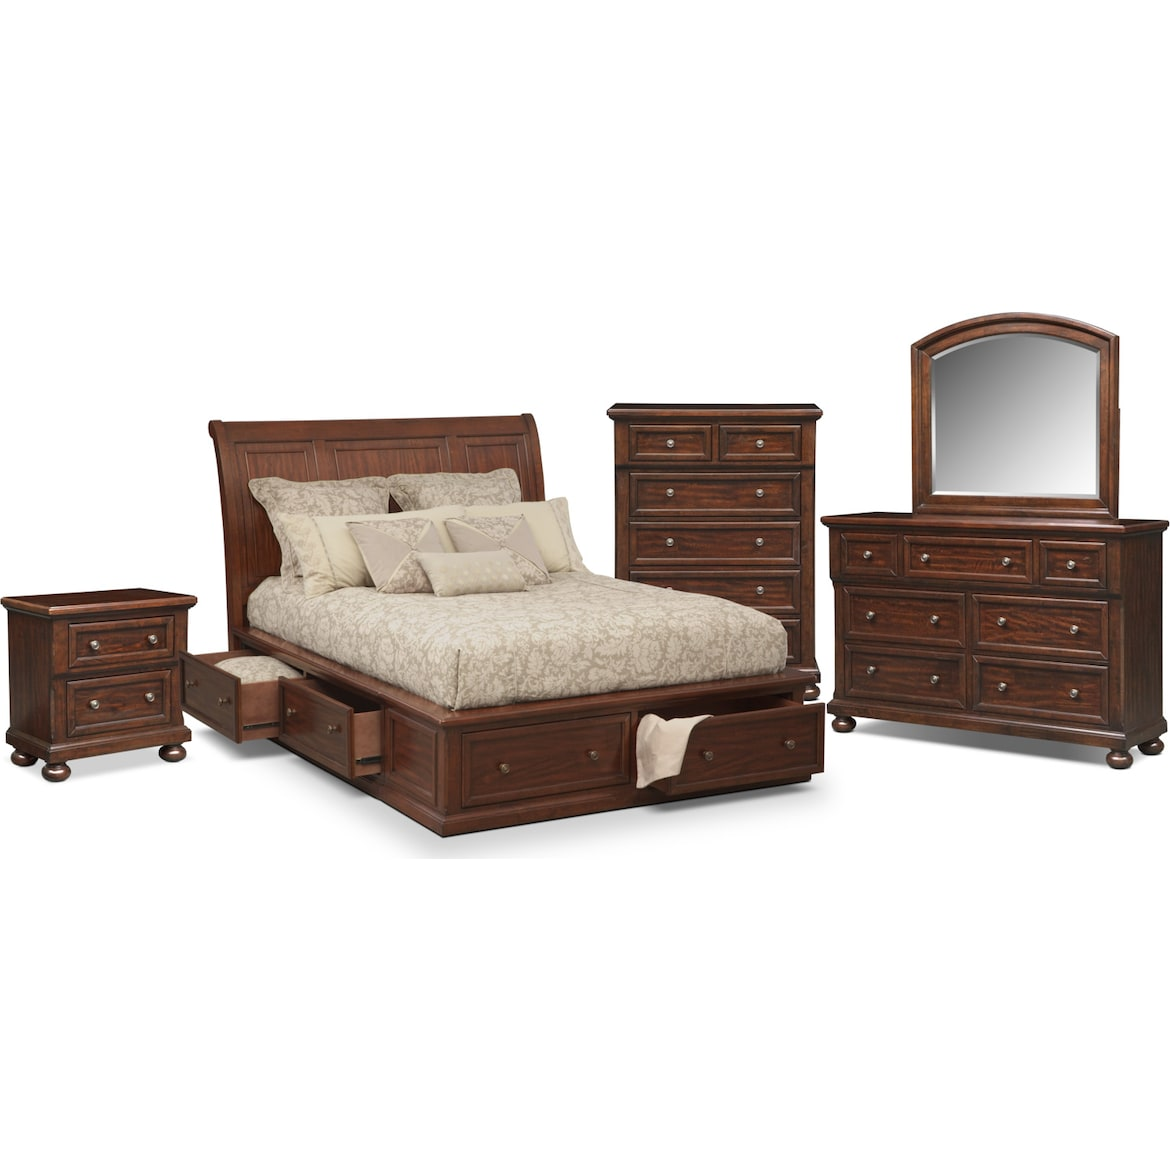 Hanover 7-Piece Storage Bedroom Set with Chest, Nightstand, Dresser ...